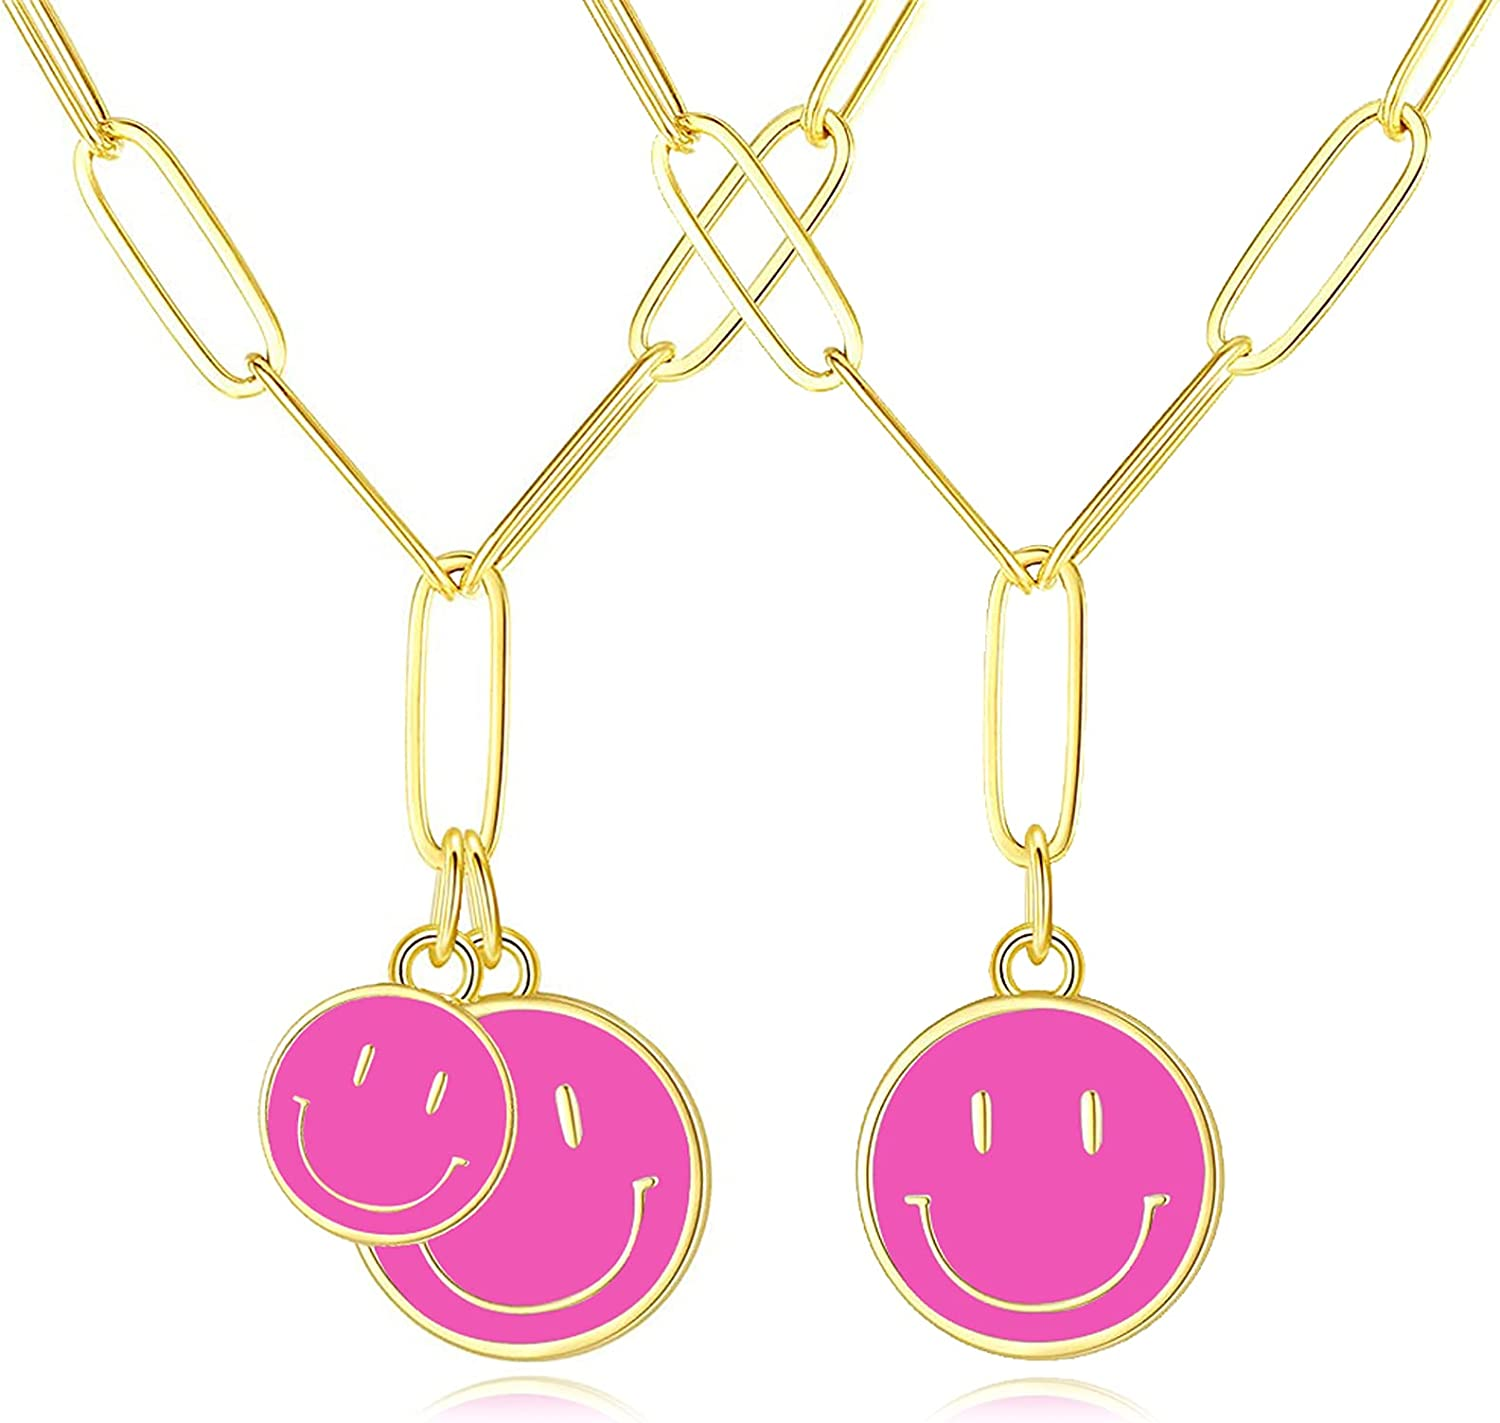 2PCS Smiley Face Necklaces Set,Gold Stainless Steel Paperclip Chain Simple Round Smiley Face Necklace Charm Lady Girlfriend Wedding Birthday Anniversary